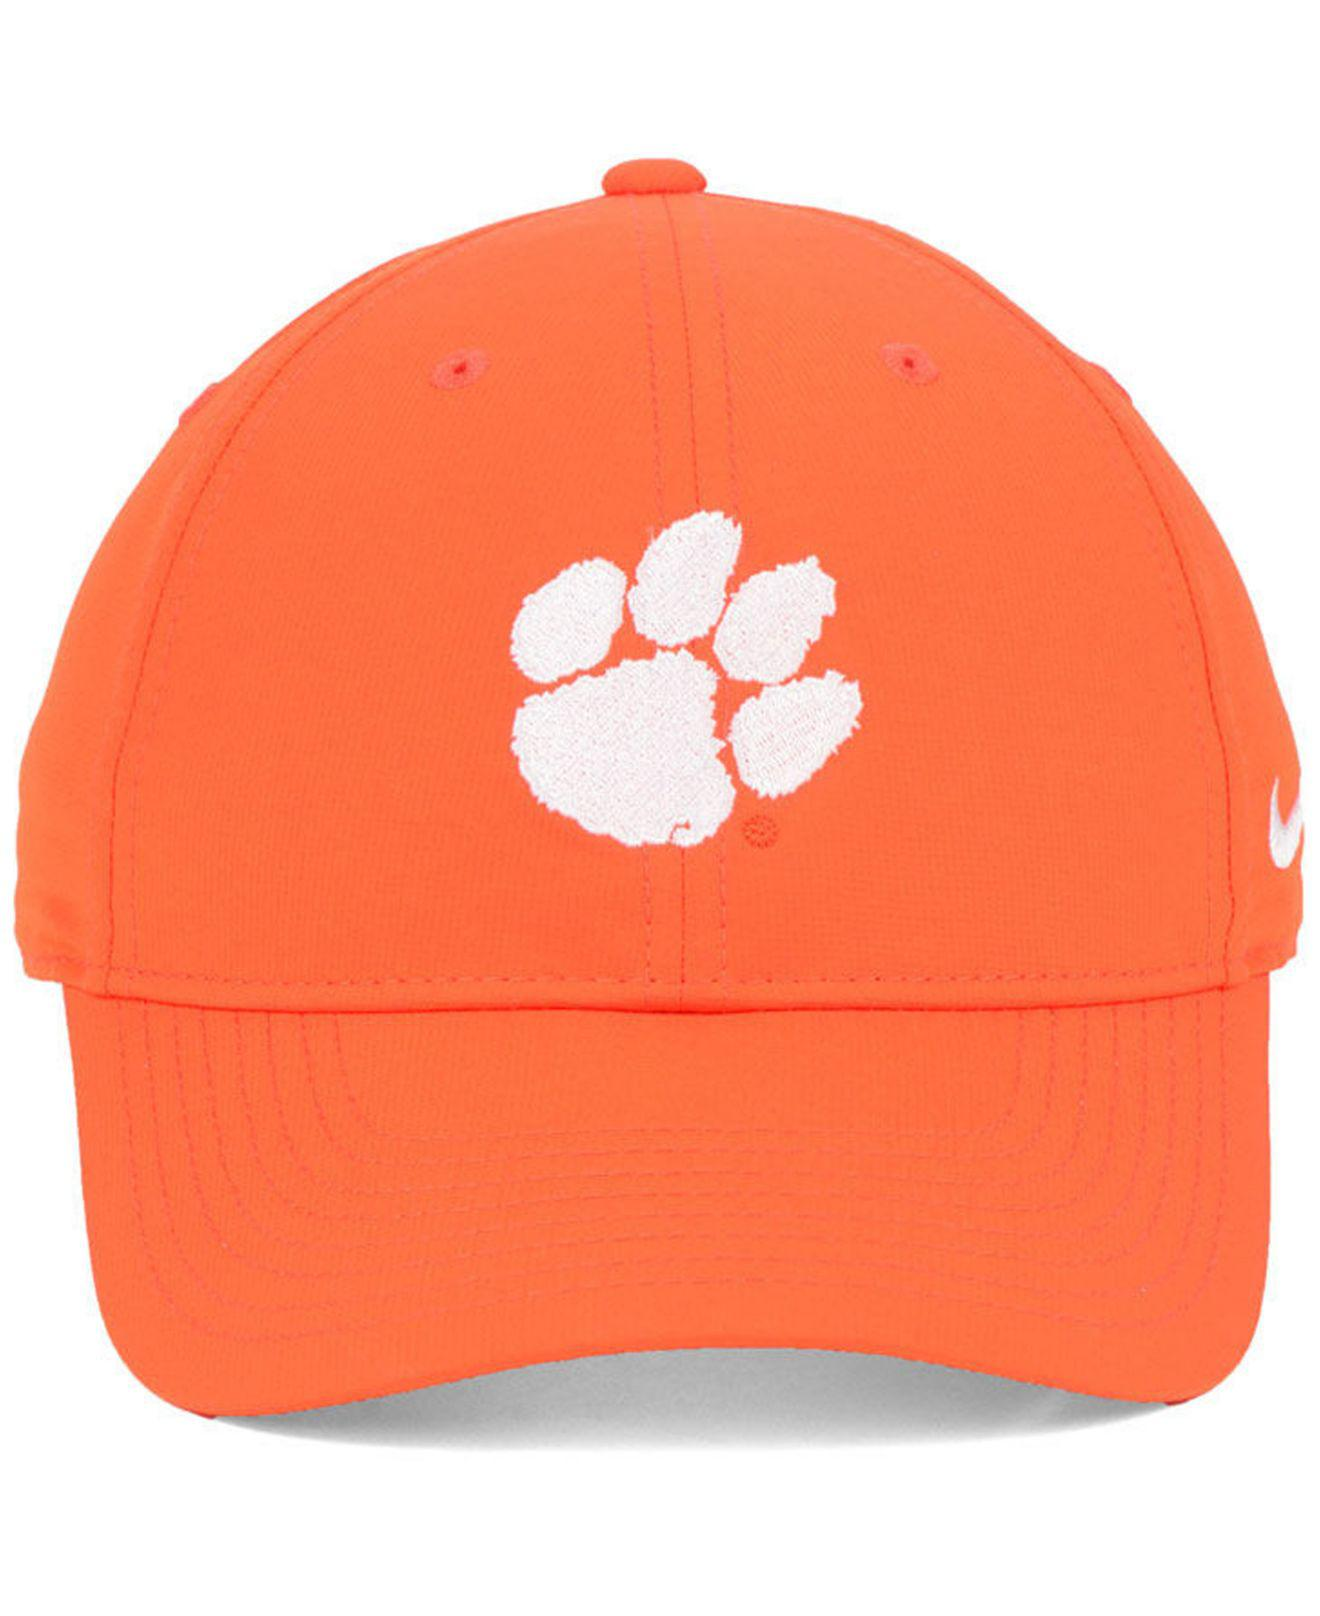 quality design e0e5e ef4d6 Lyst - Nike Clemson Tigers Dri-fit Adjustable Cap in Orange for Men